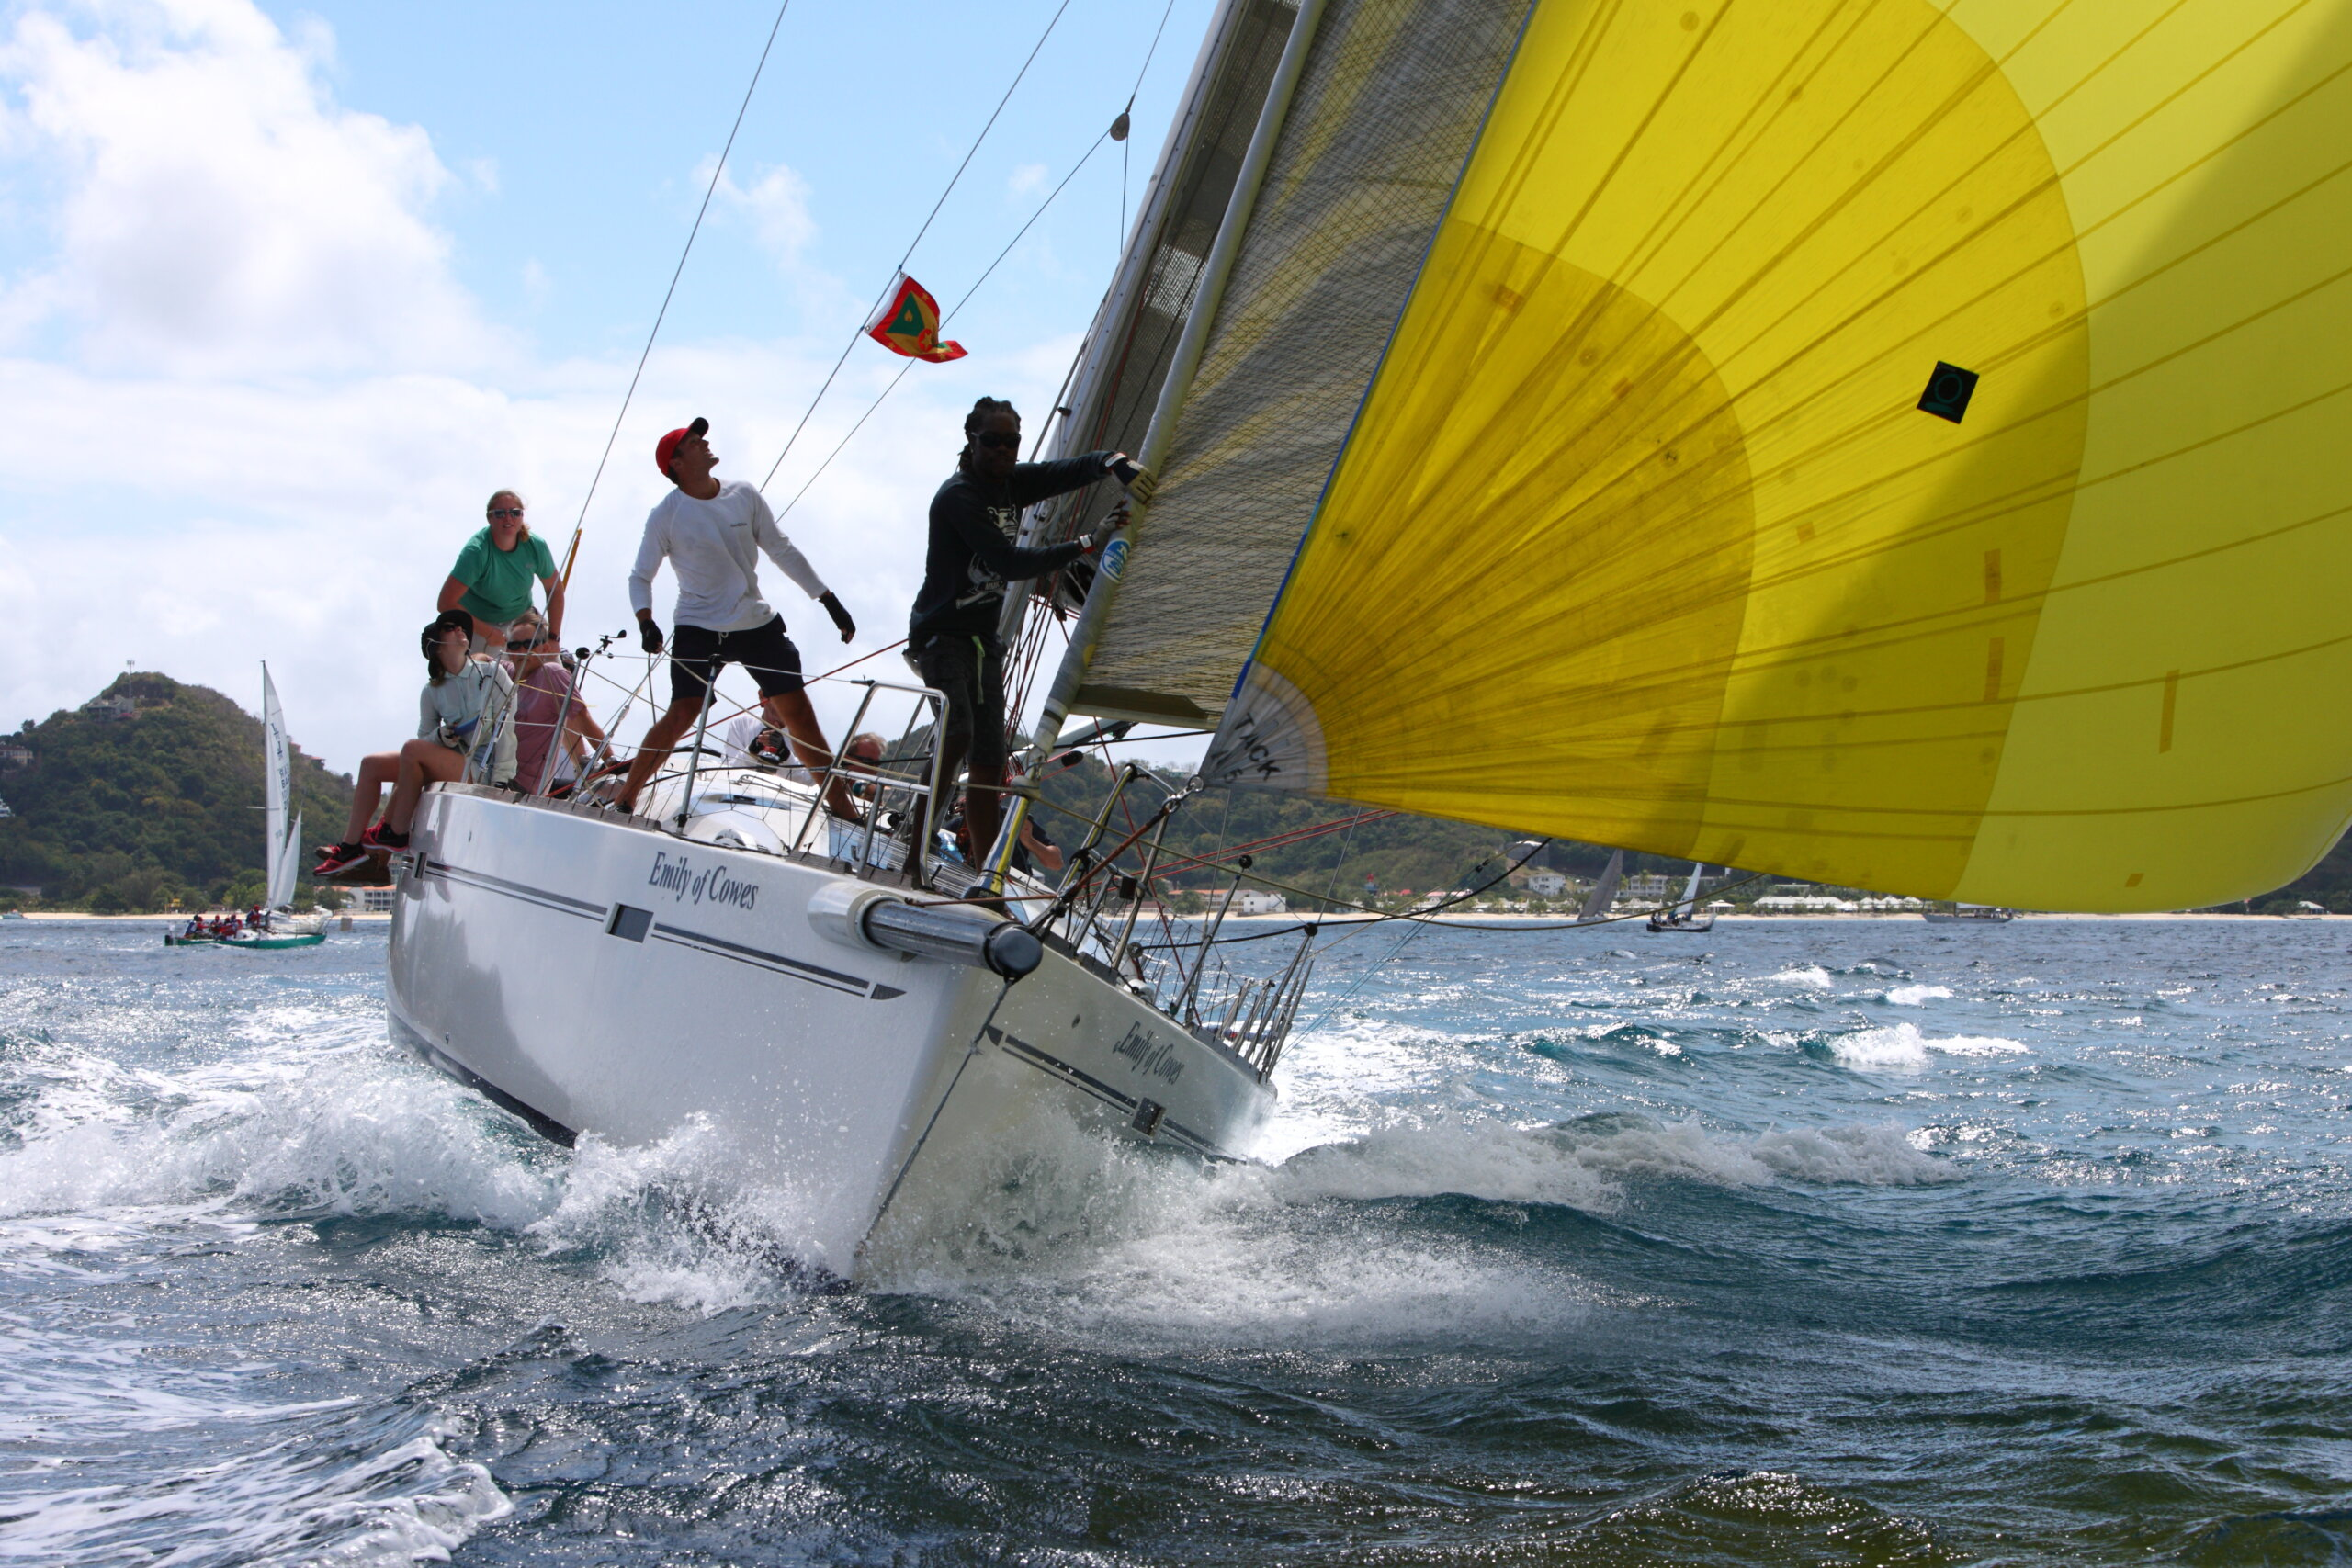 Online registration is now OPEN for the highly anticipated Island Water World Grenada Sailing Week taking place 26 - 31 January 2020.